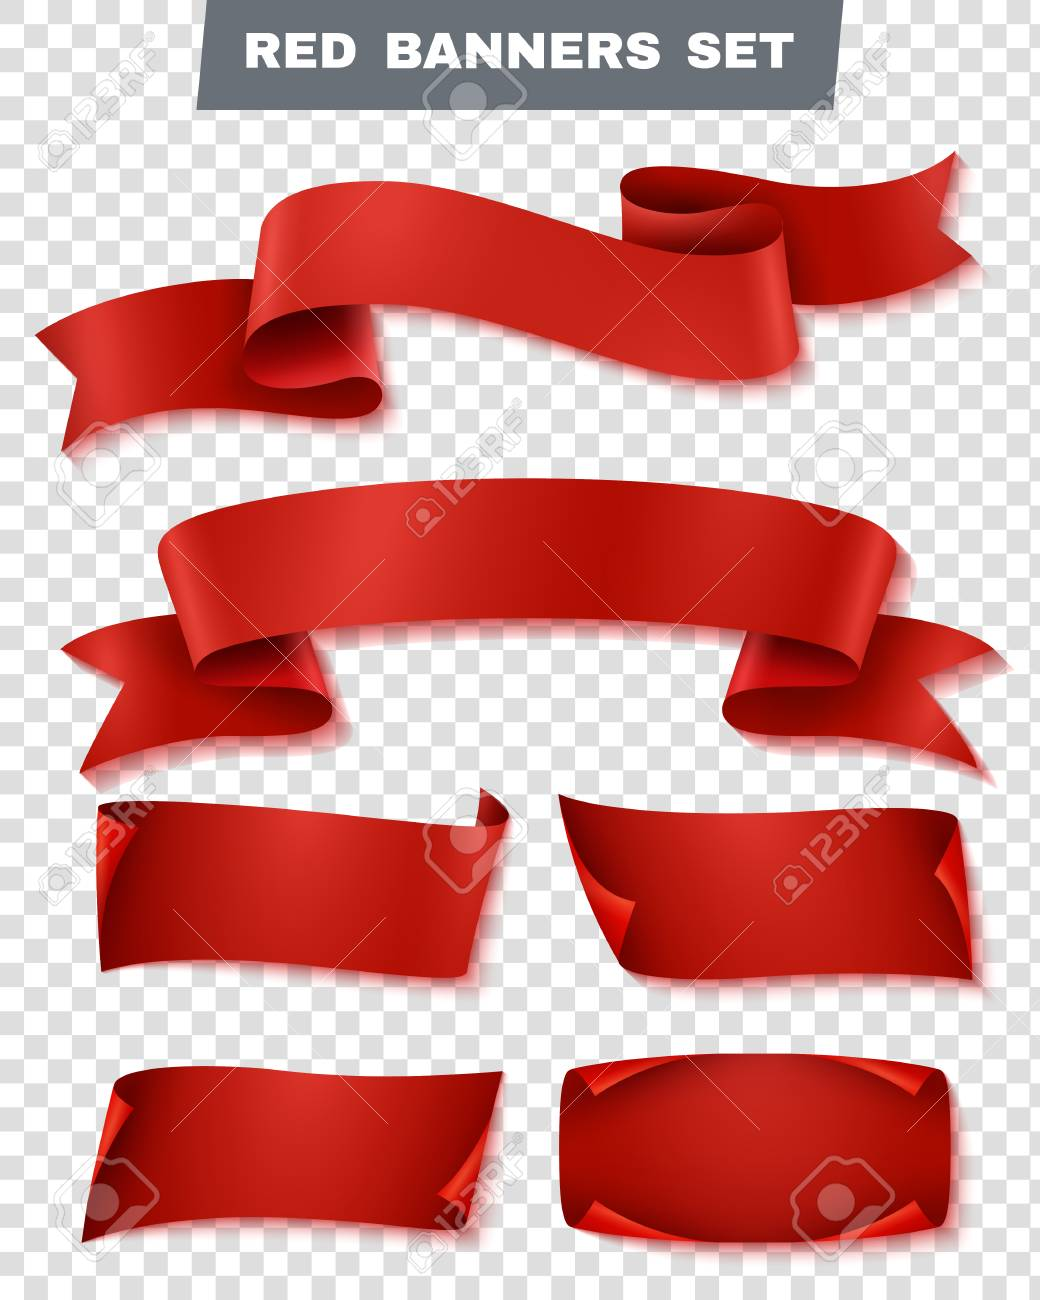 realistic red paper banner transparent icon set with different